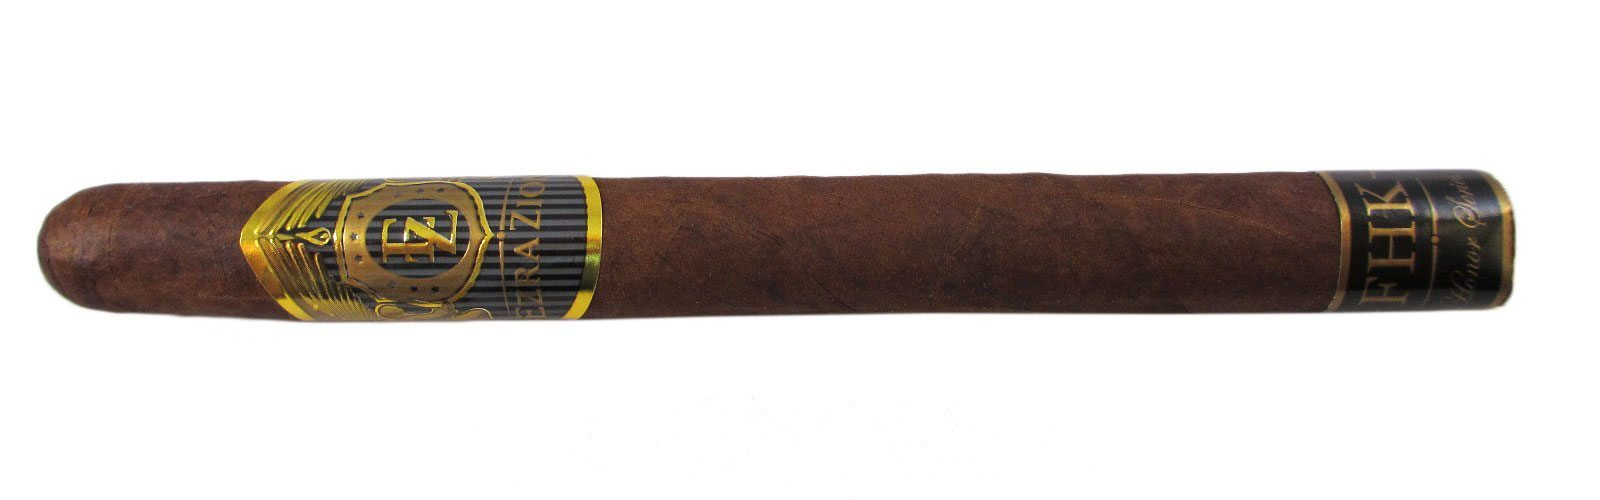 Blind Cigar Review: Ezra Zion | FHK Truth